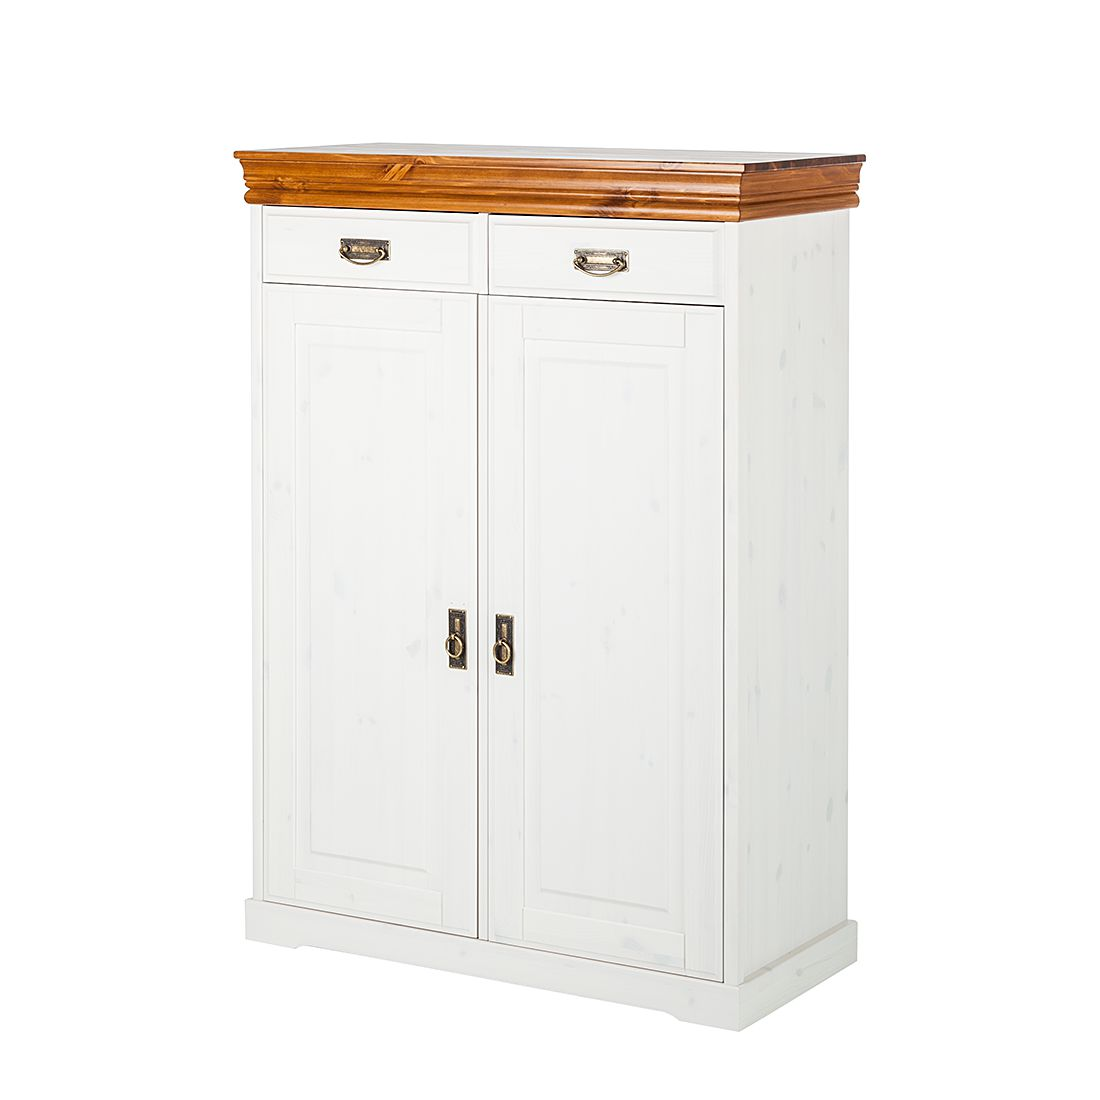 Commode Formentera - Pin massif - Blanc / Marron, Maison Belfort